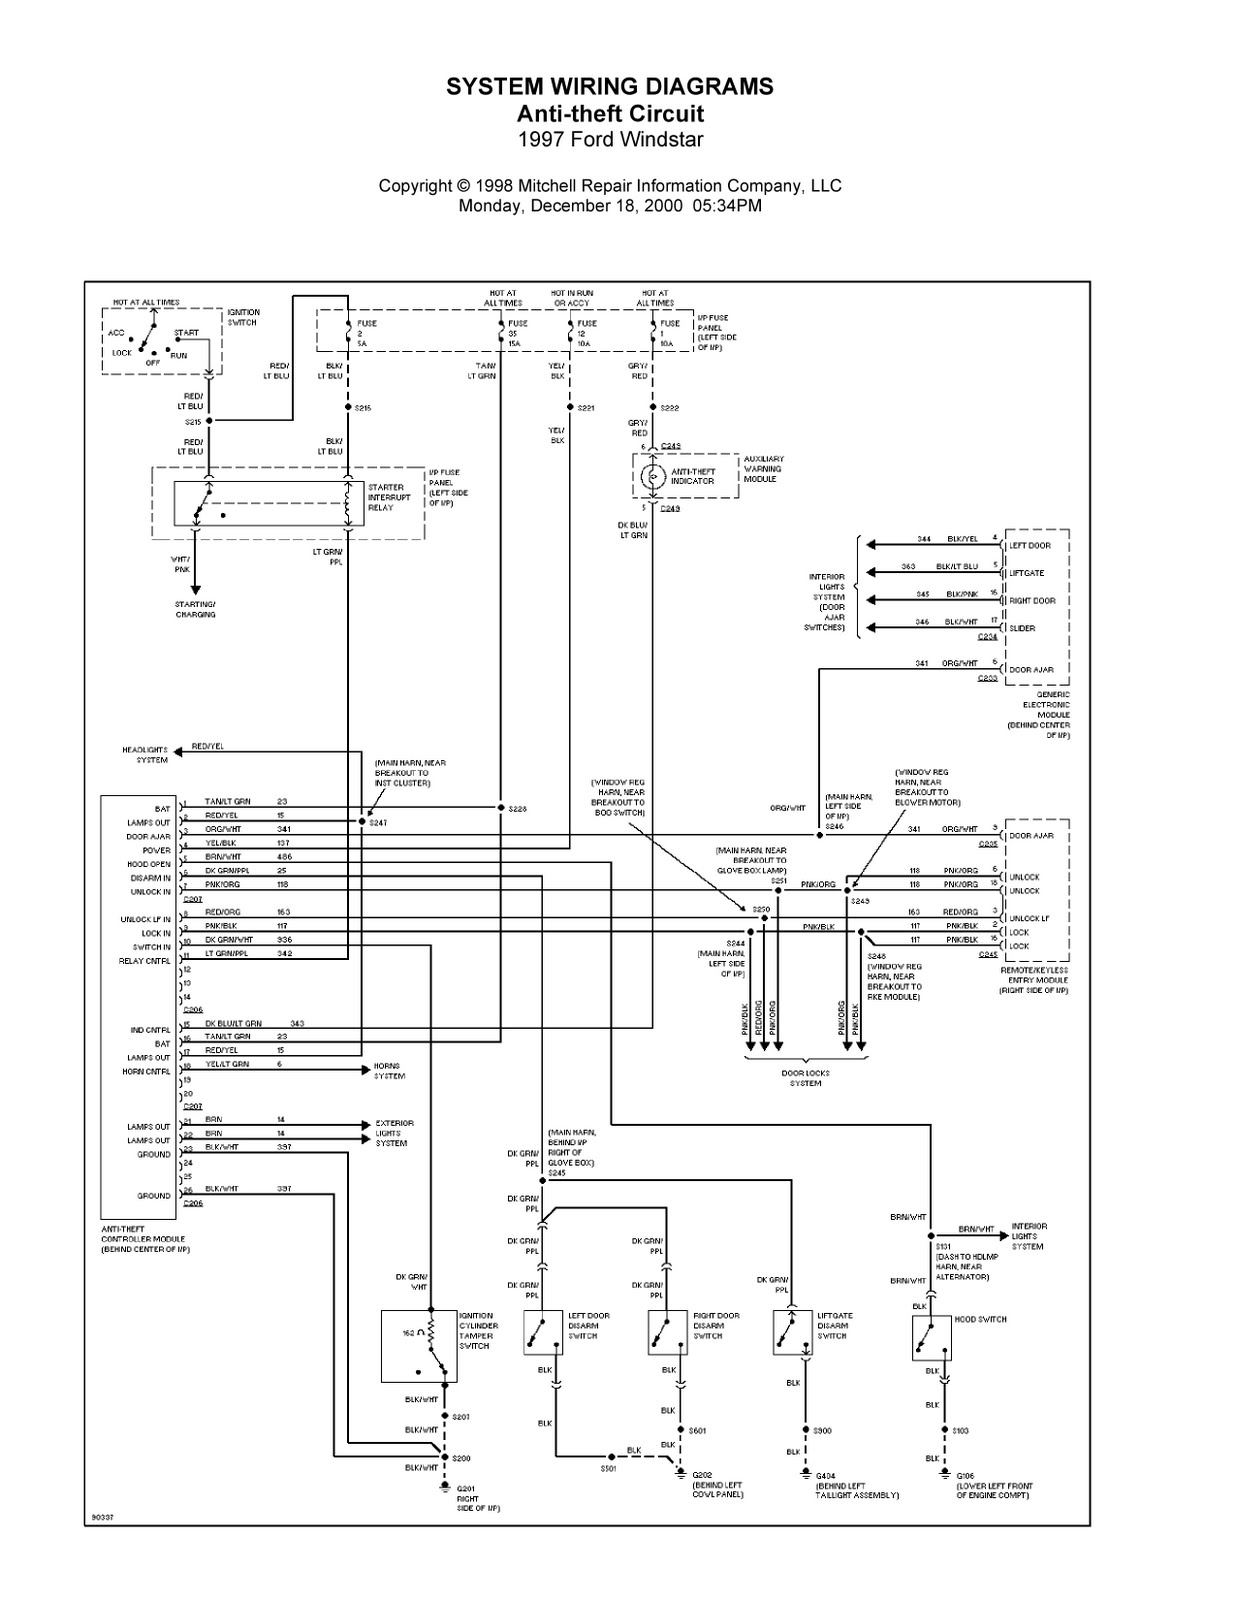 1997 ford windstar complete system wiring diagrams ... complete system wiring diagrams 1997 ford windstar ford alternator wiring diagrams 1997 #15